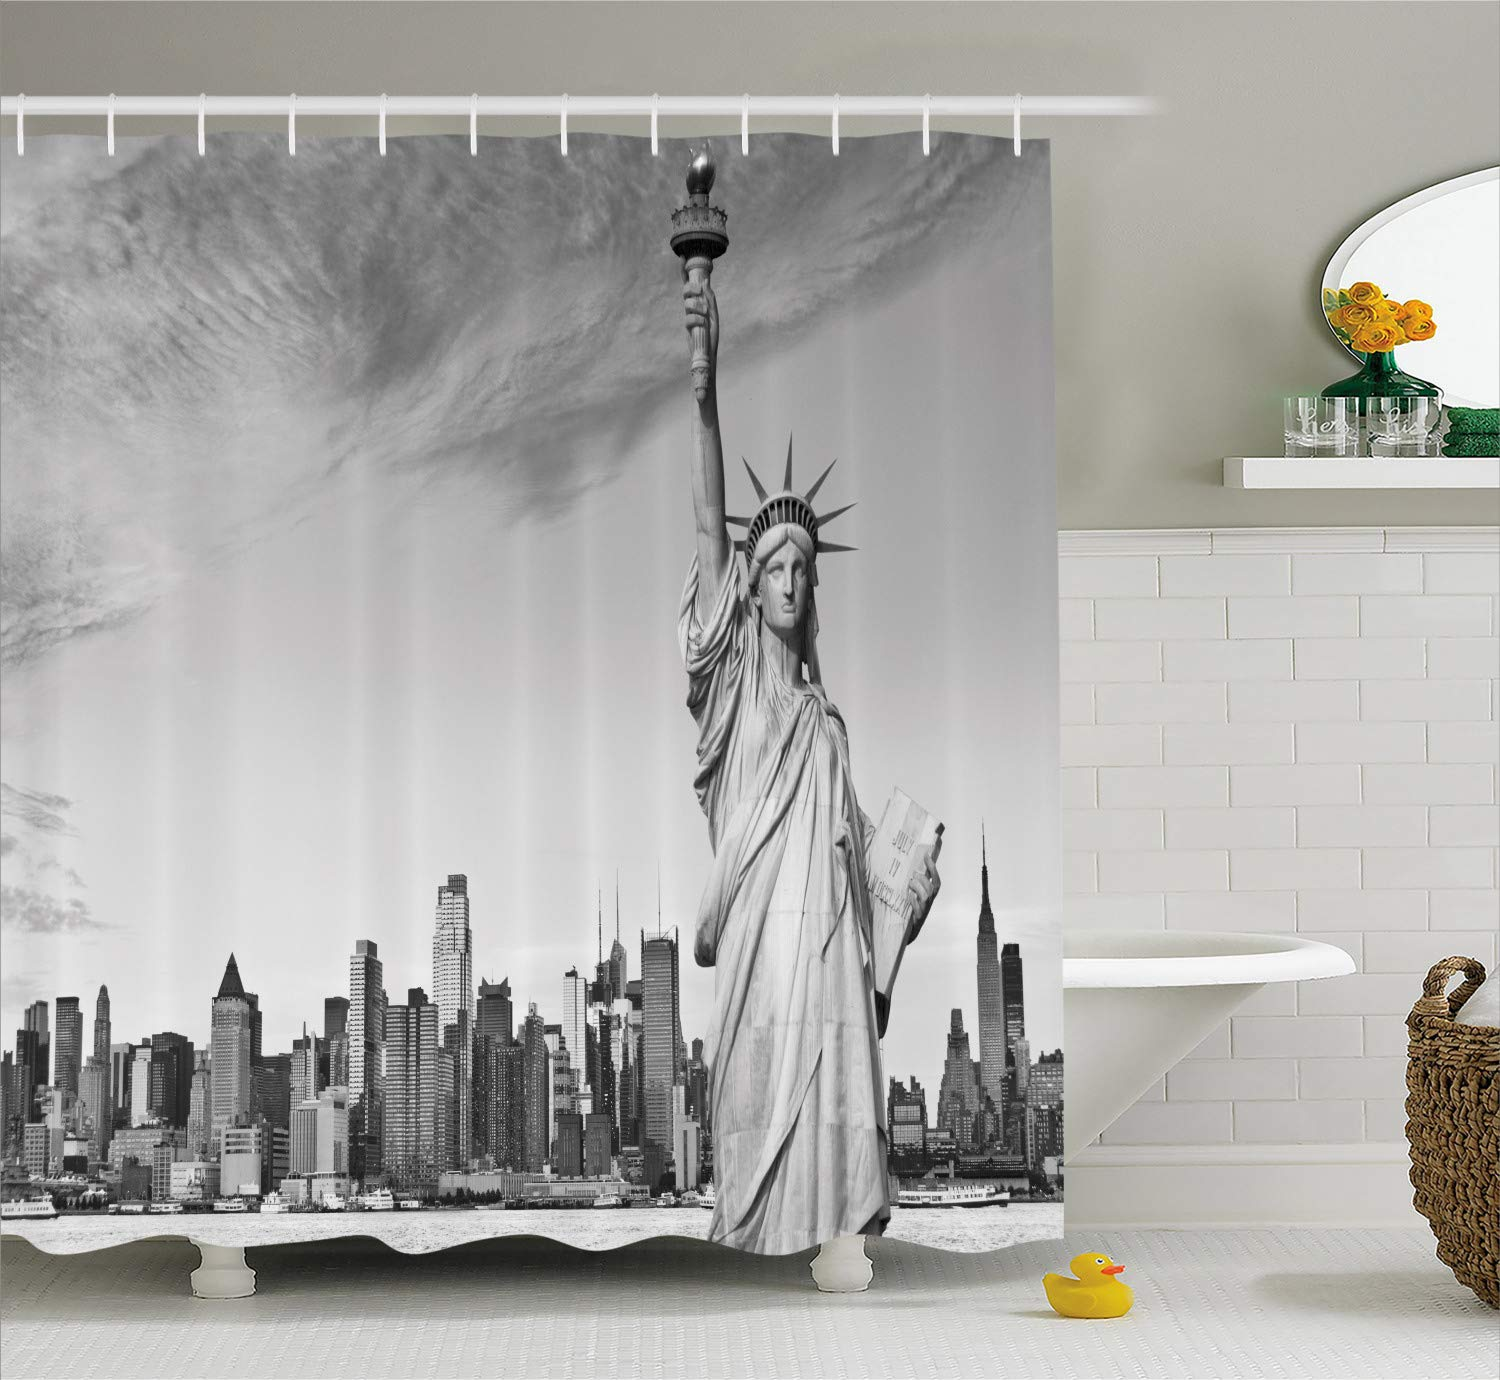 Ambesonne New York City Shower Curtain Statue Of Liberty Famous American Monument Landscape Illustration Fabric Bathroom Decor Set With